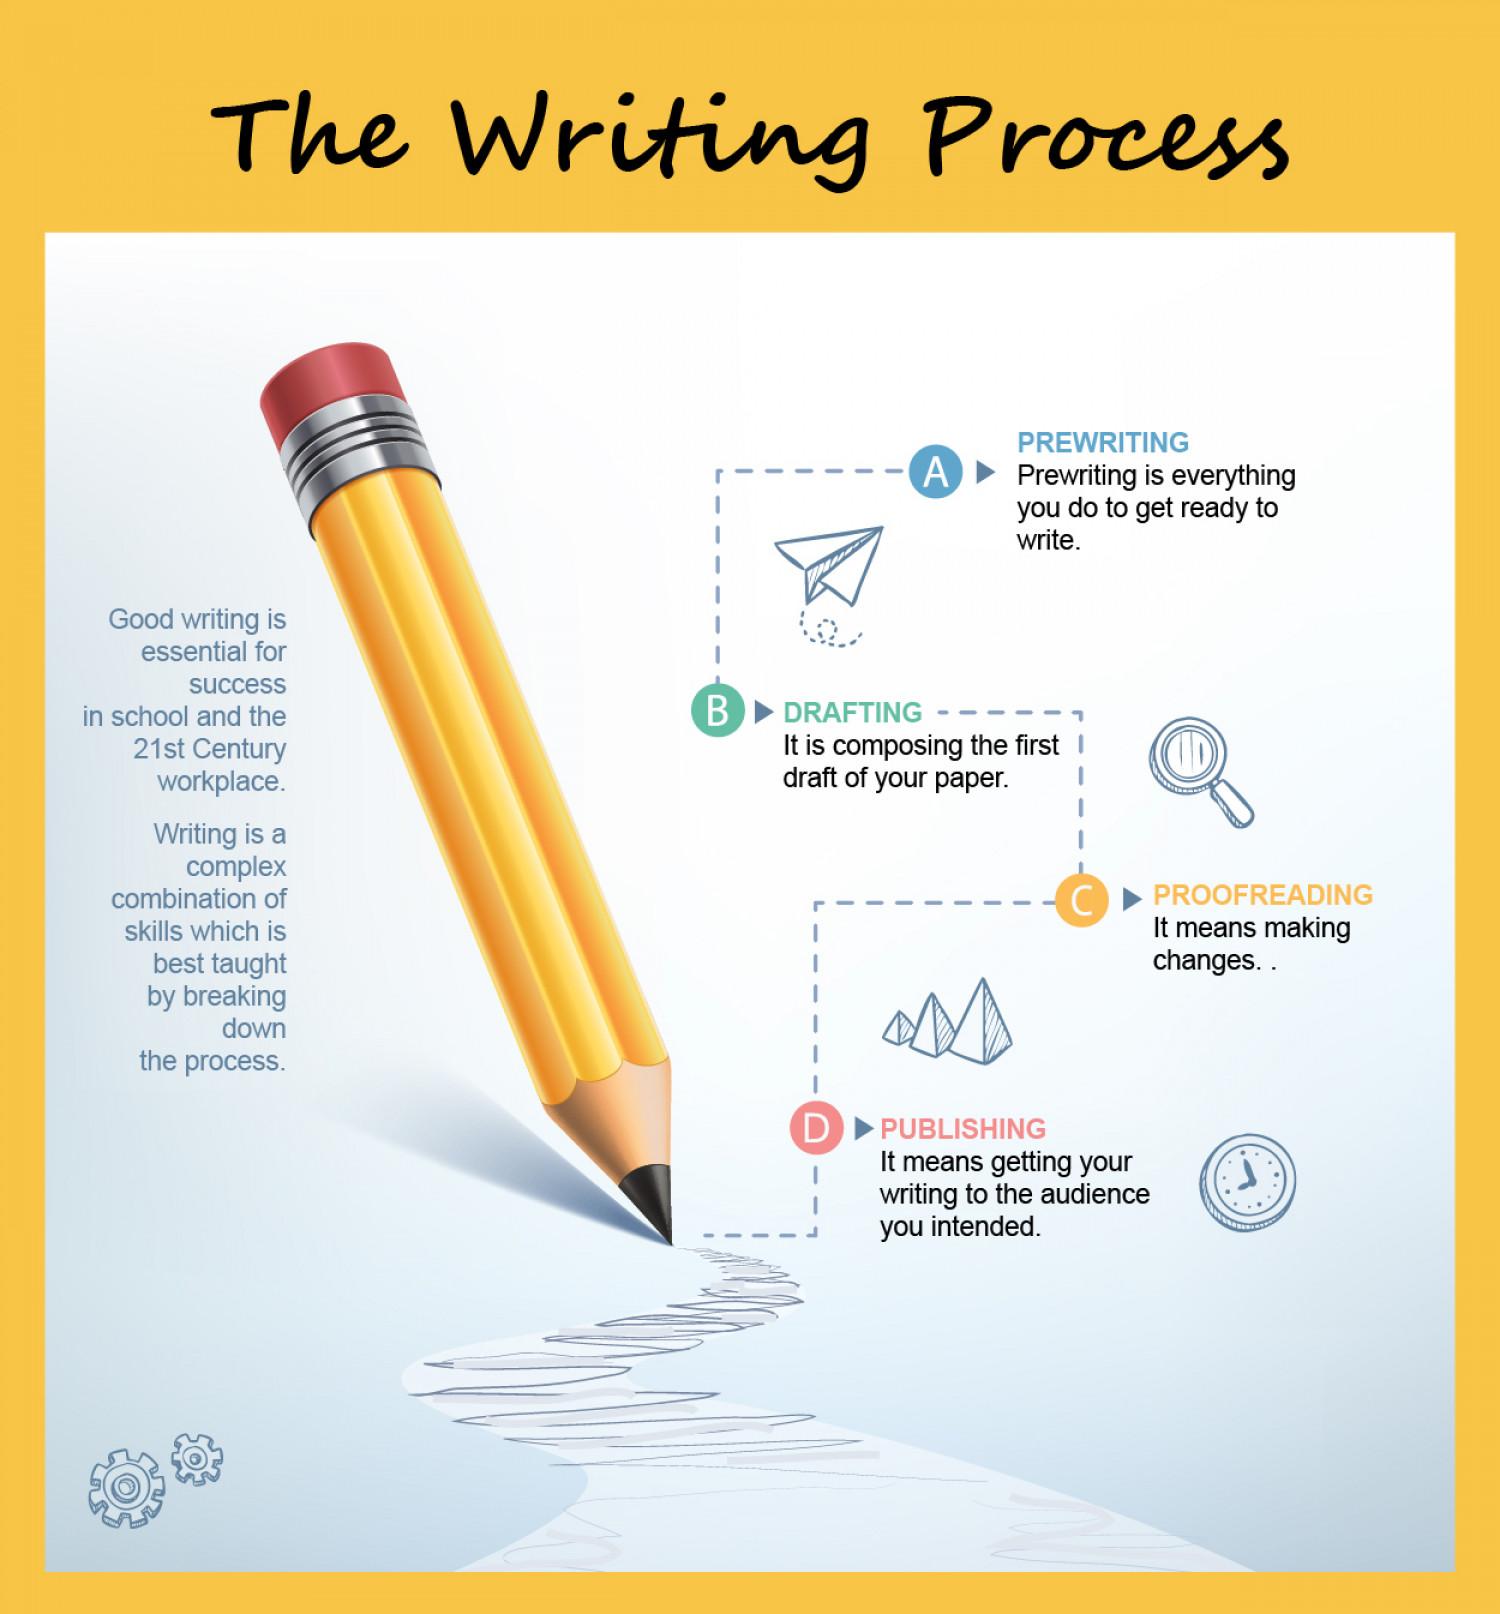 The Writing Process Steps To Writing Success